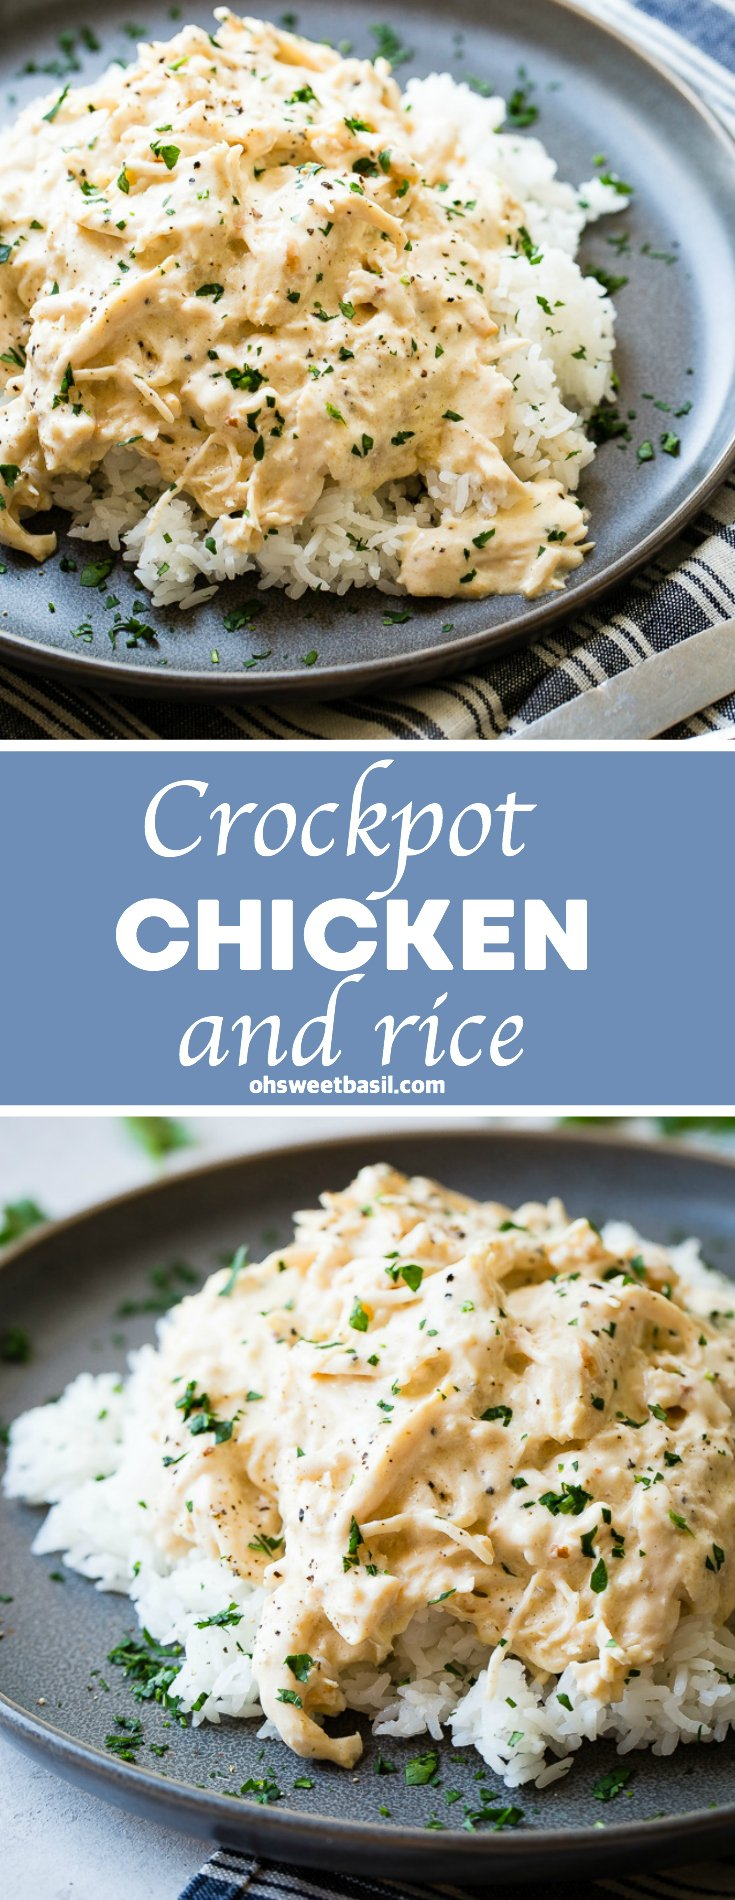 A dark grey plate with a pile of white Jasmine rice with creamy crockpot chicken shredded over the top